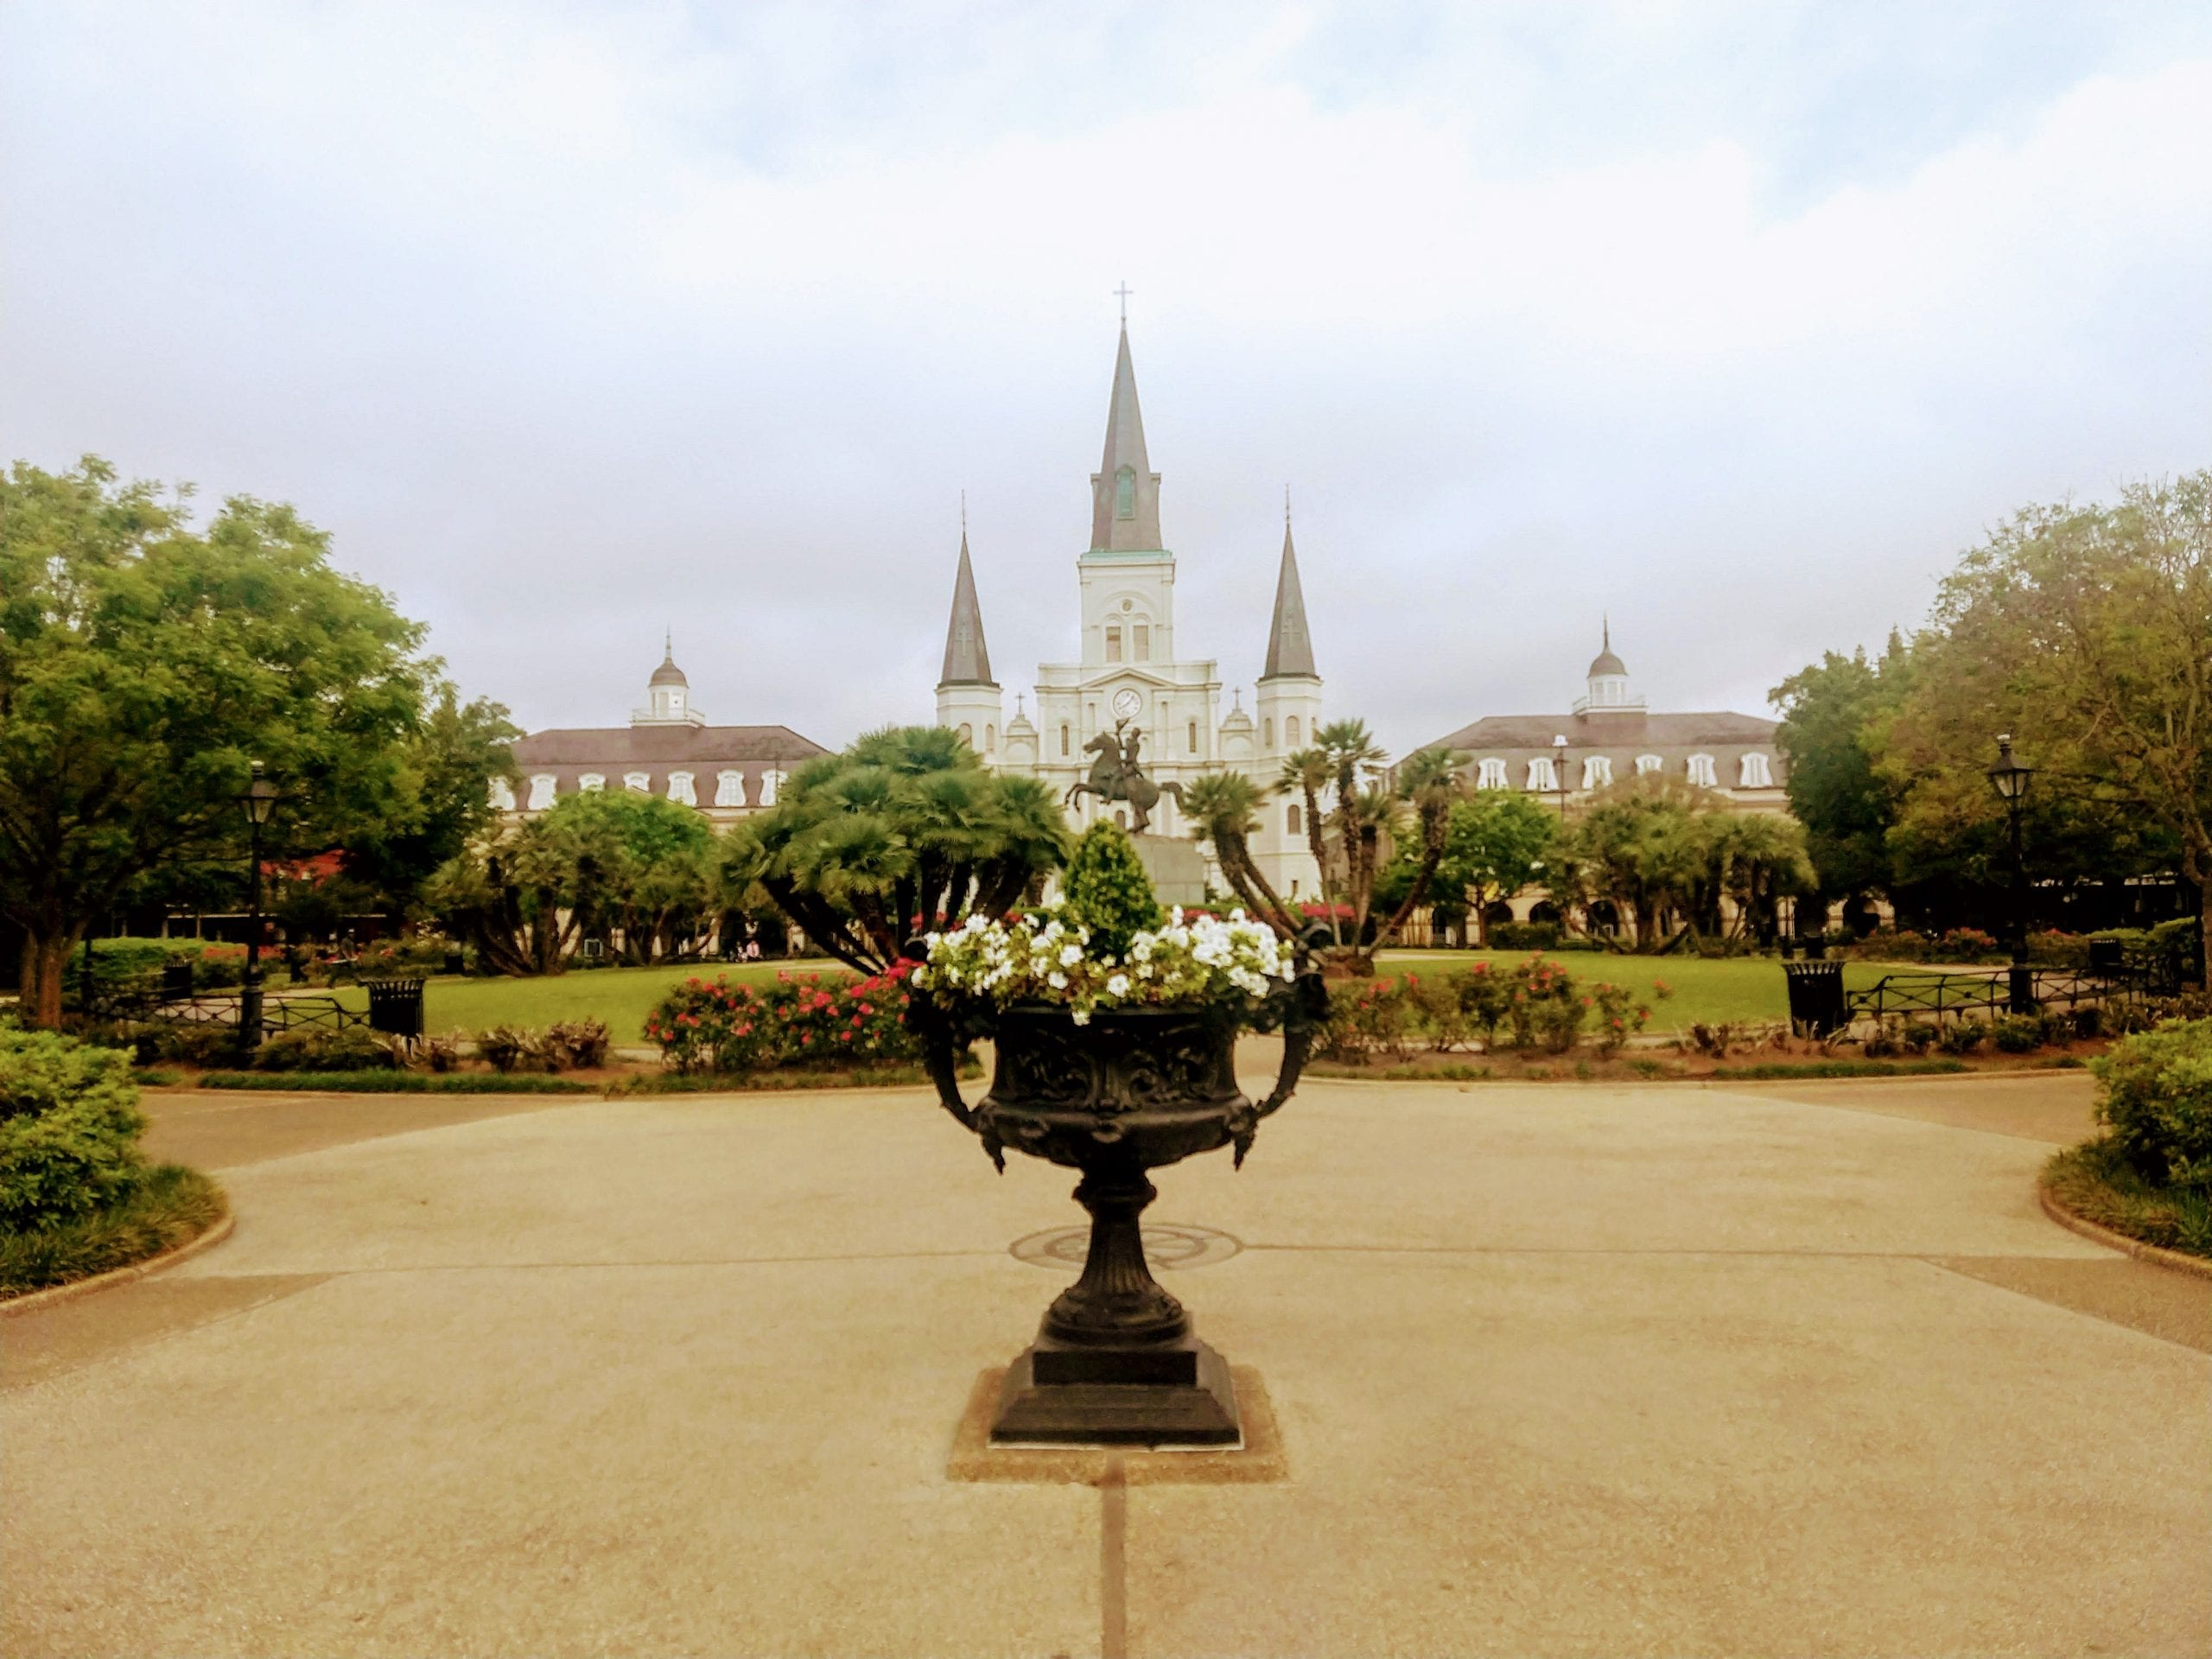 New Orleans: A 3 Day Guide to Jazz, Food, and Tinder in the Big Easy